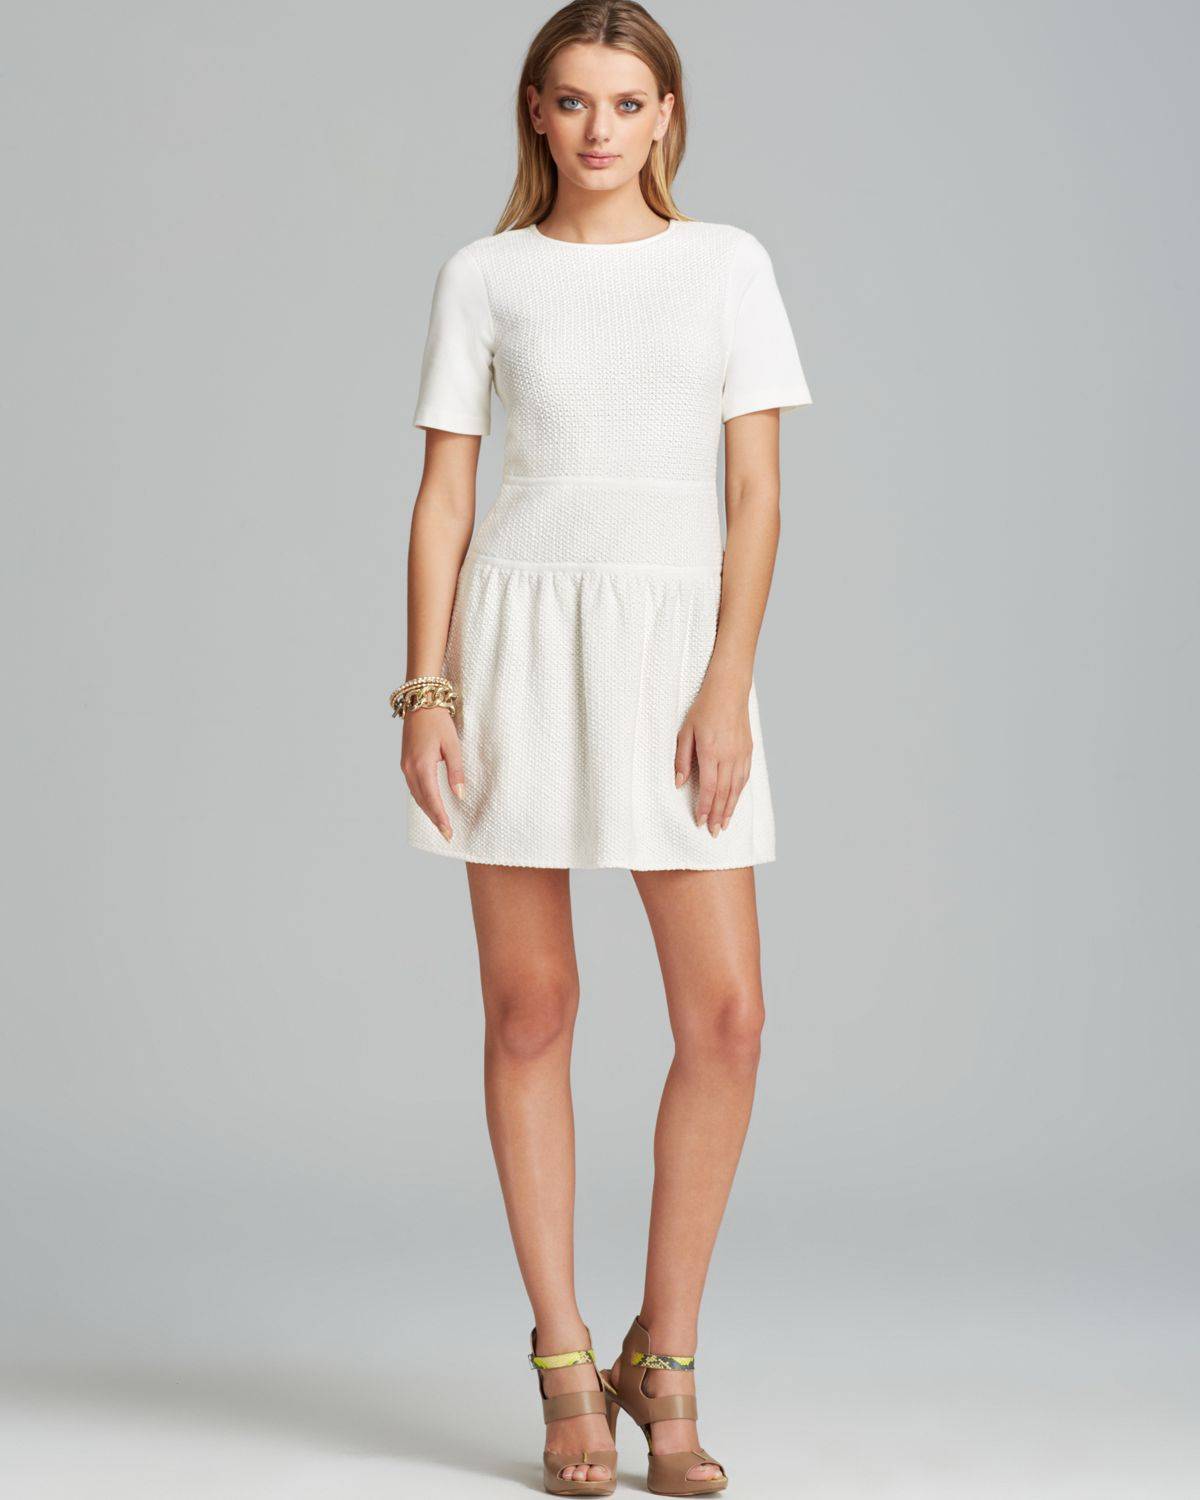 Tibi Dress Crochet Short Sleeve Flirty in White | Lyst